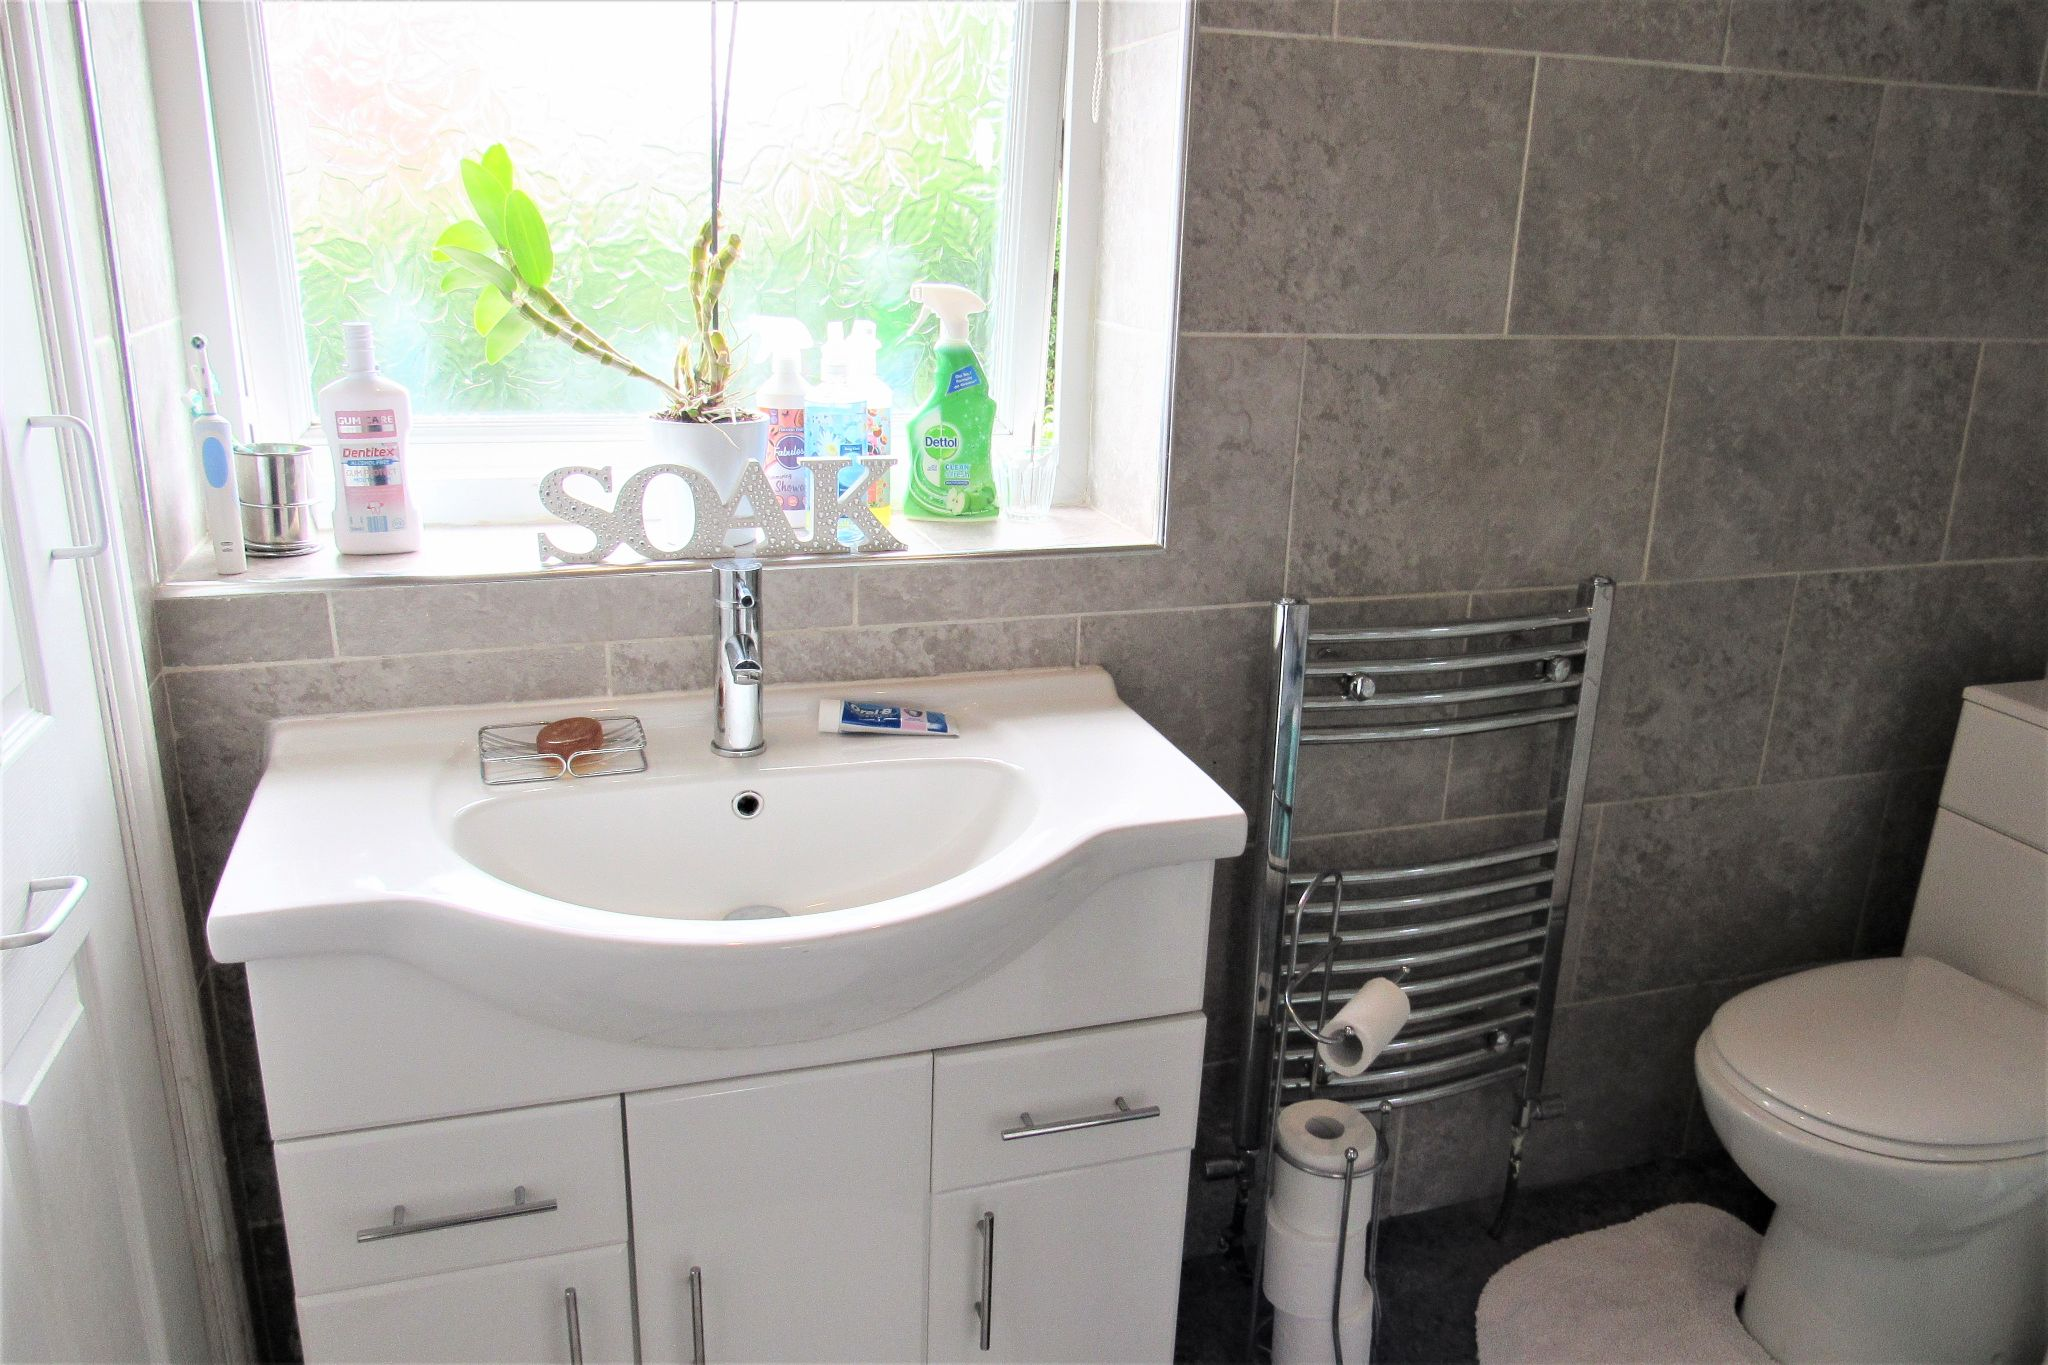 3 bedroom mid terraced house SSTC in Manchester - Photograph 15.